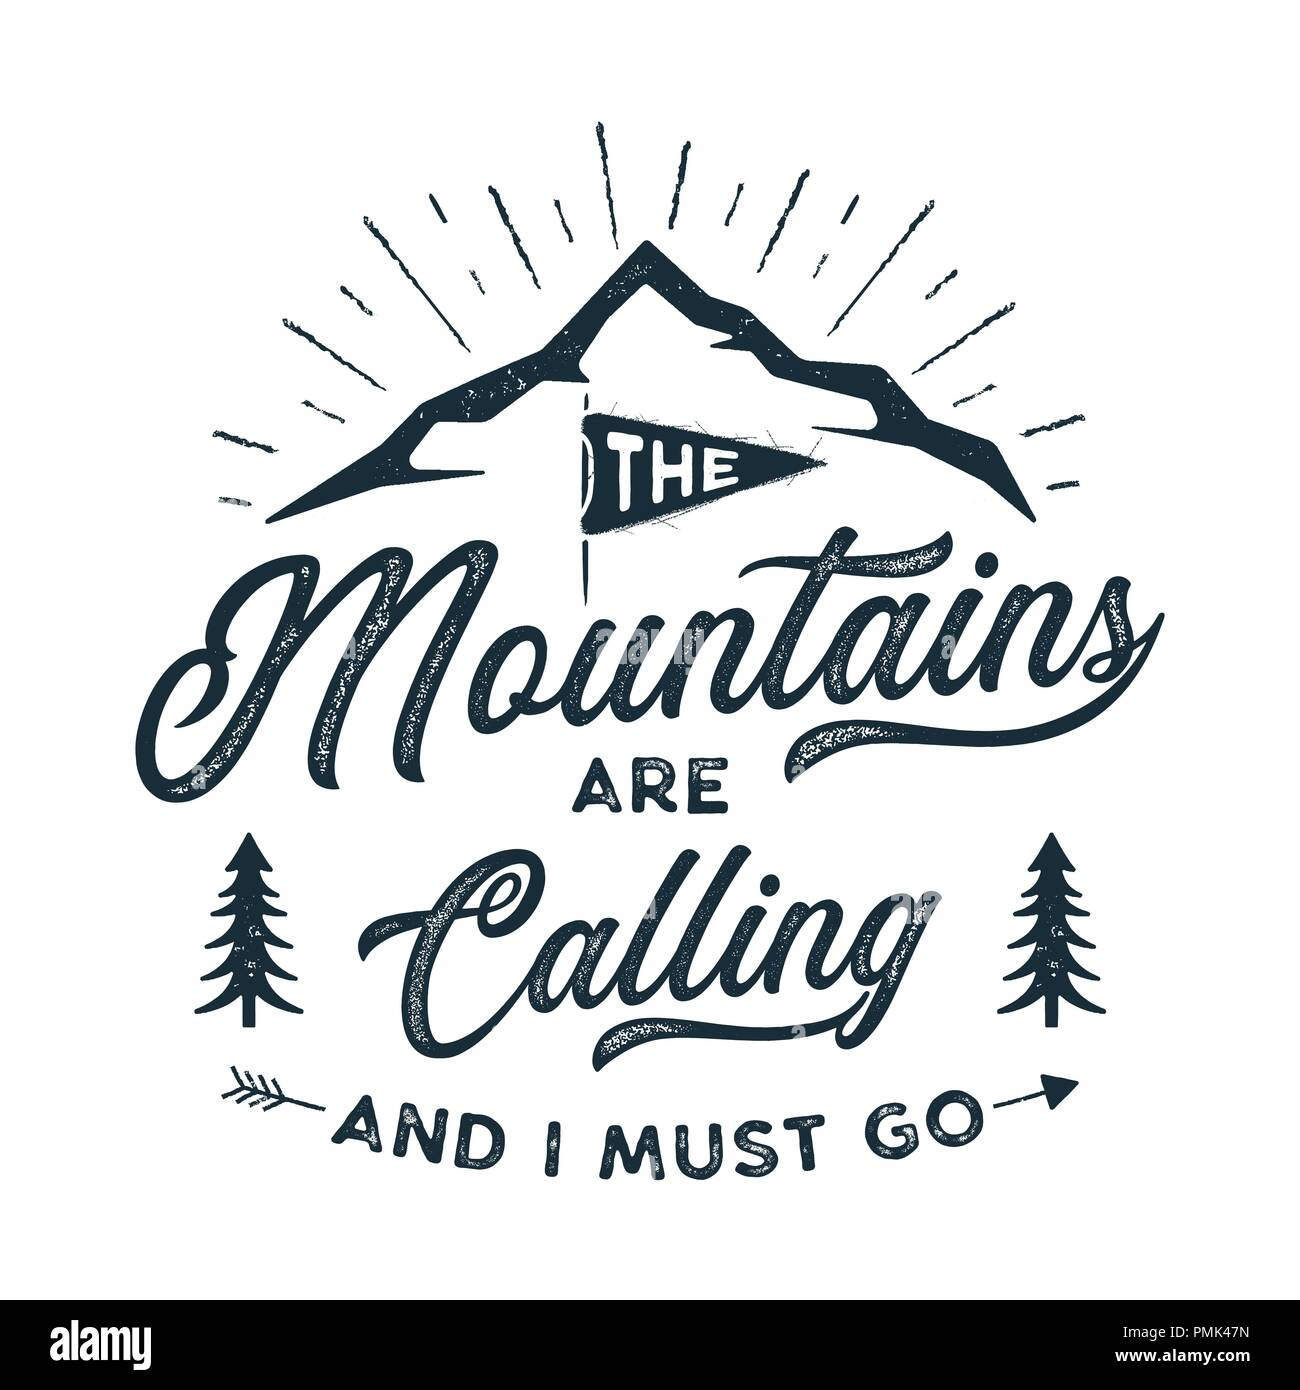 Travel T-Shirt Print. The mountains are calling and i must go design. Adventure silhouette printing, poster. Camping emblem, textured style. Typography hipster tee. Stock vector illustration Stock Vector